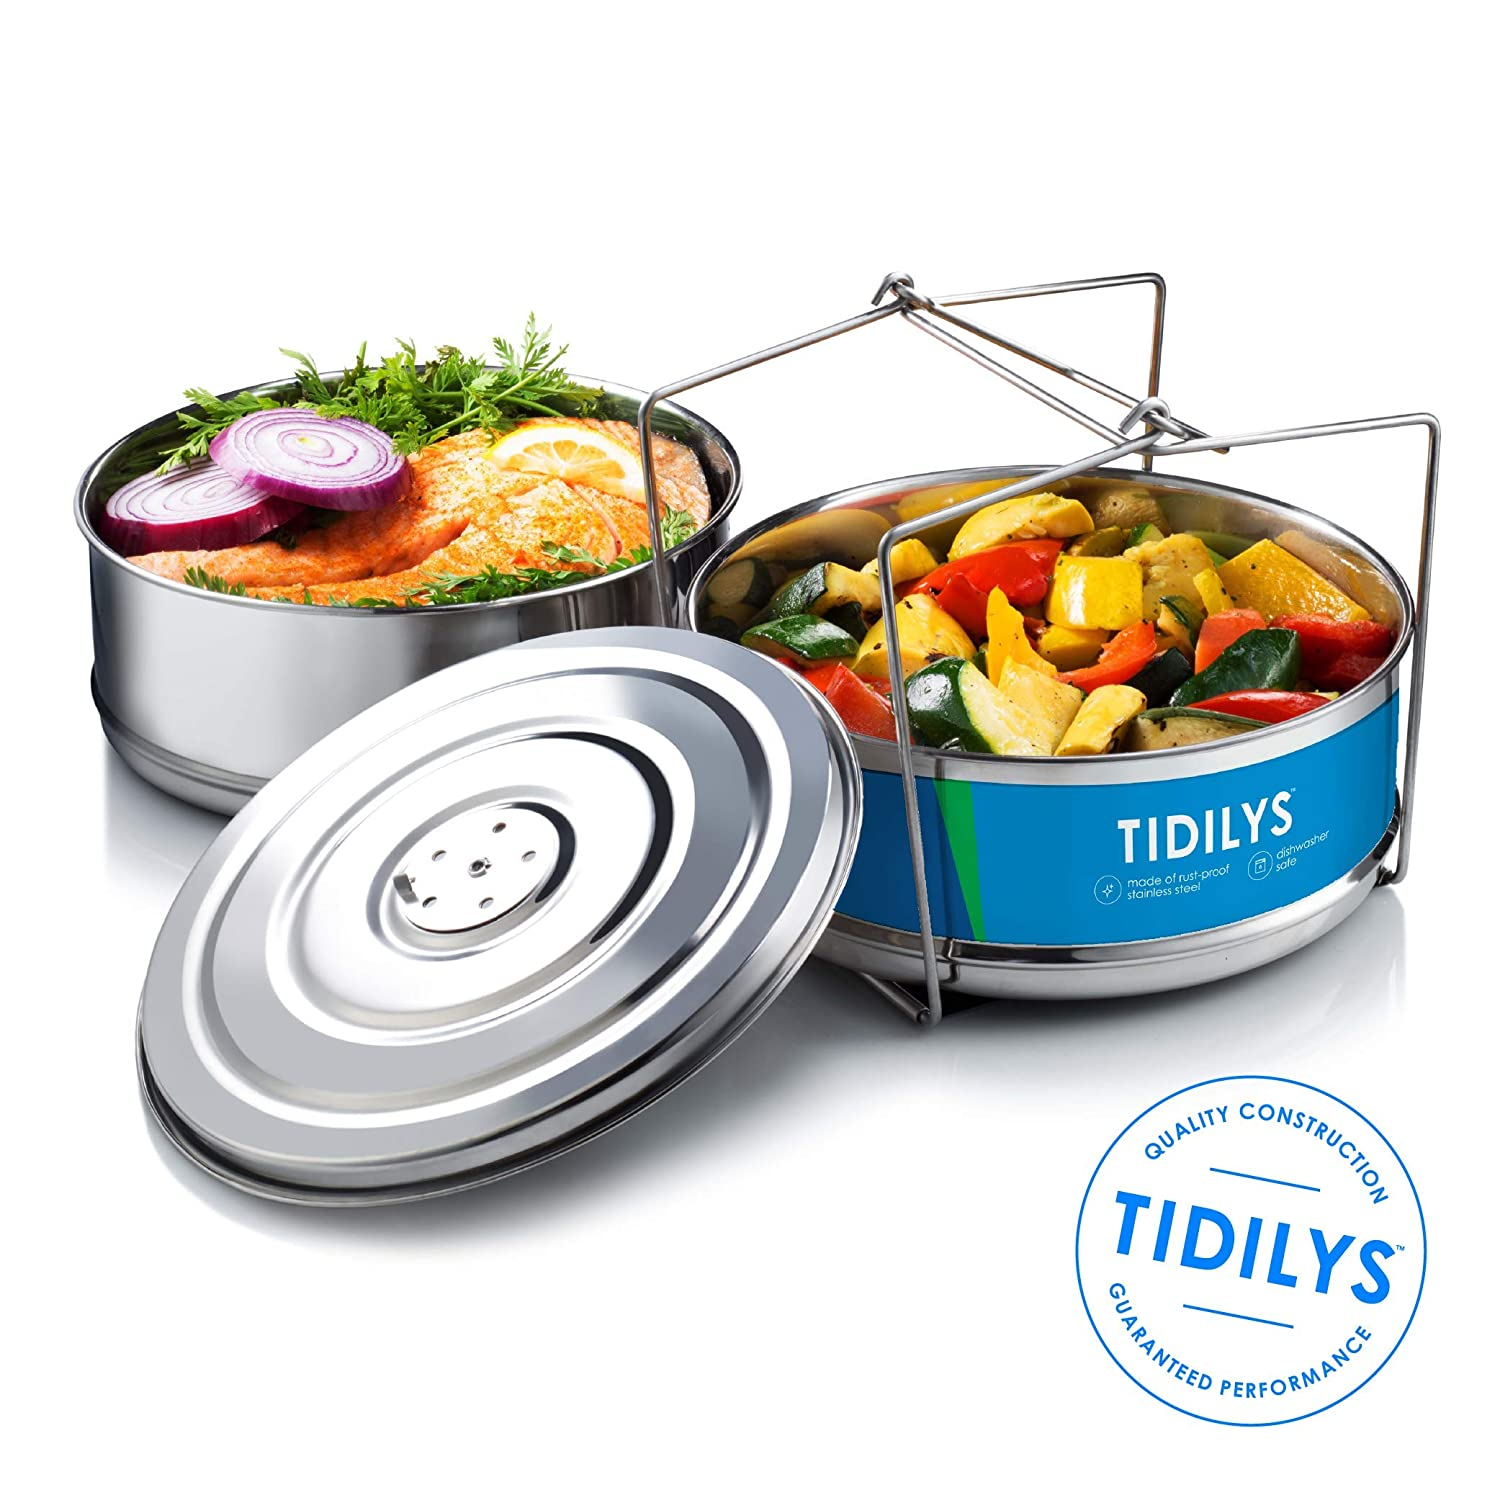 Tidilys High Pressure Cooker Steamer Basket with Lid Stackable Stainless-Steel Instant Pot Insert Steam Vegetables Meat Fish Rice Fits 5, 6, 8 Quart Pots Dual 2-Tier Container System